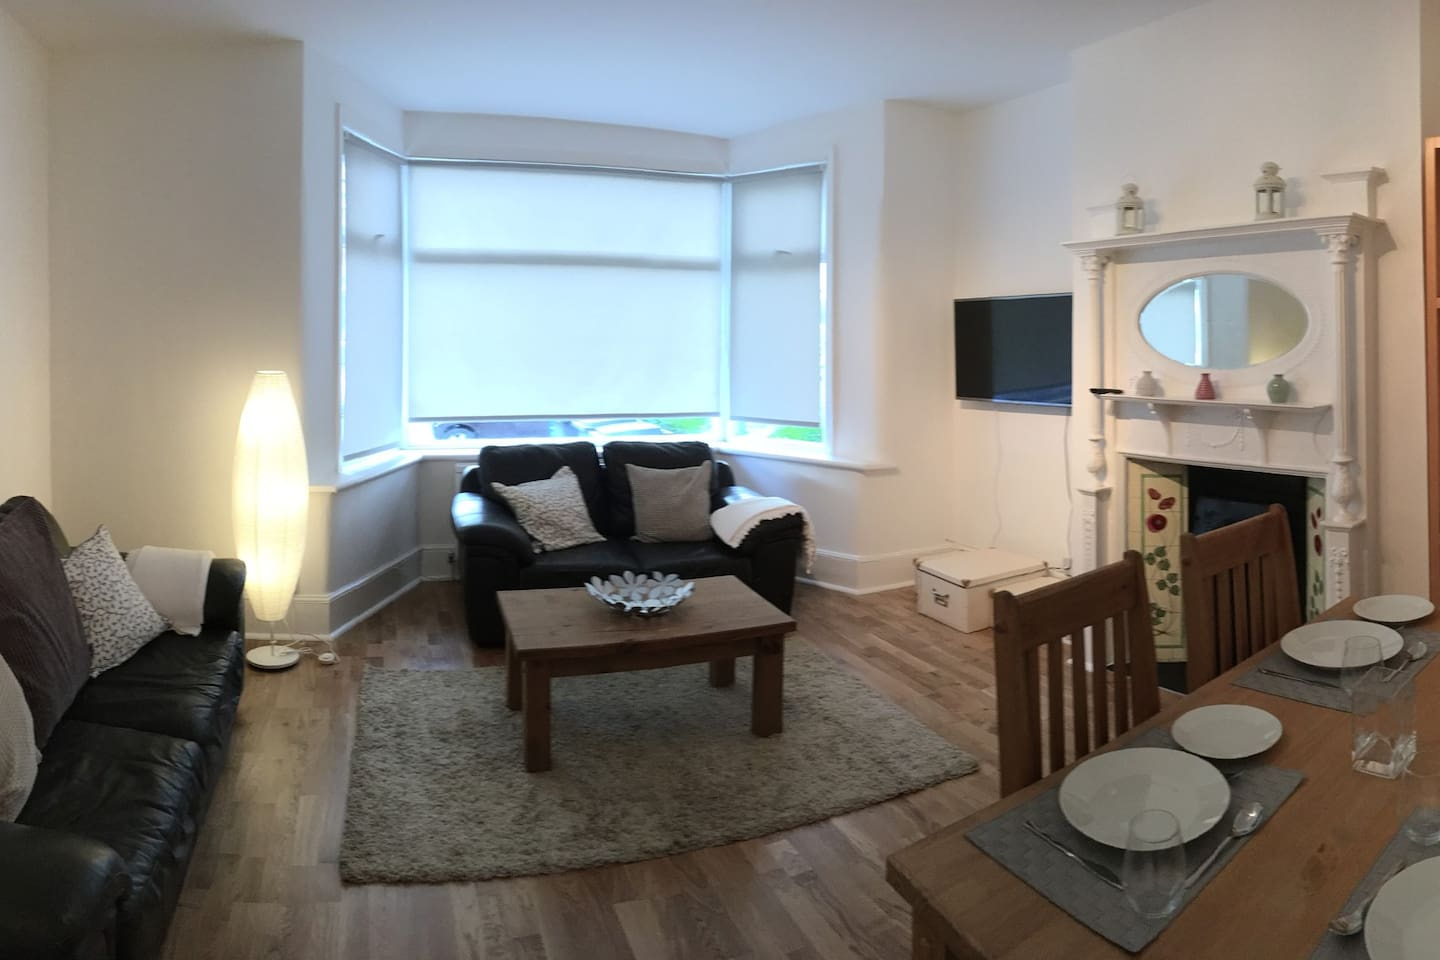 Lovely warm cosy lounge/dining room with original fireplace